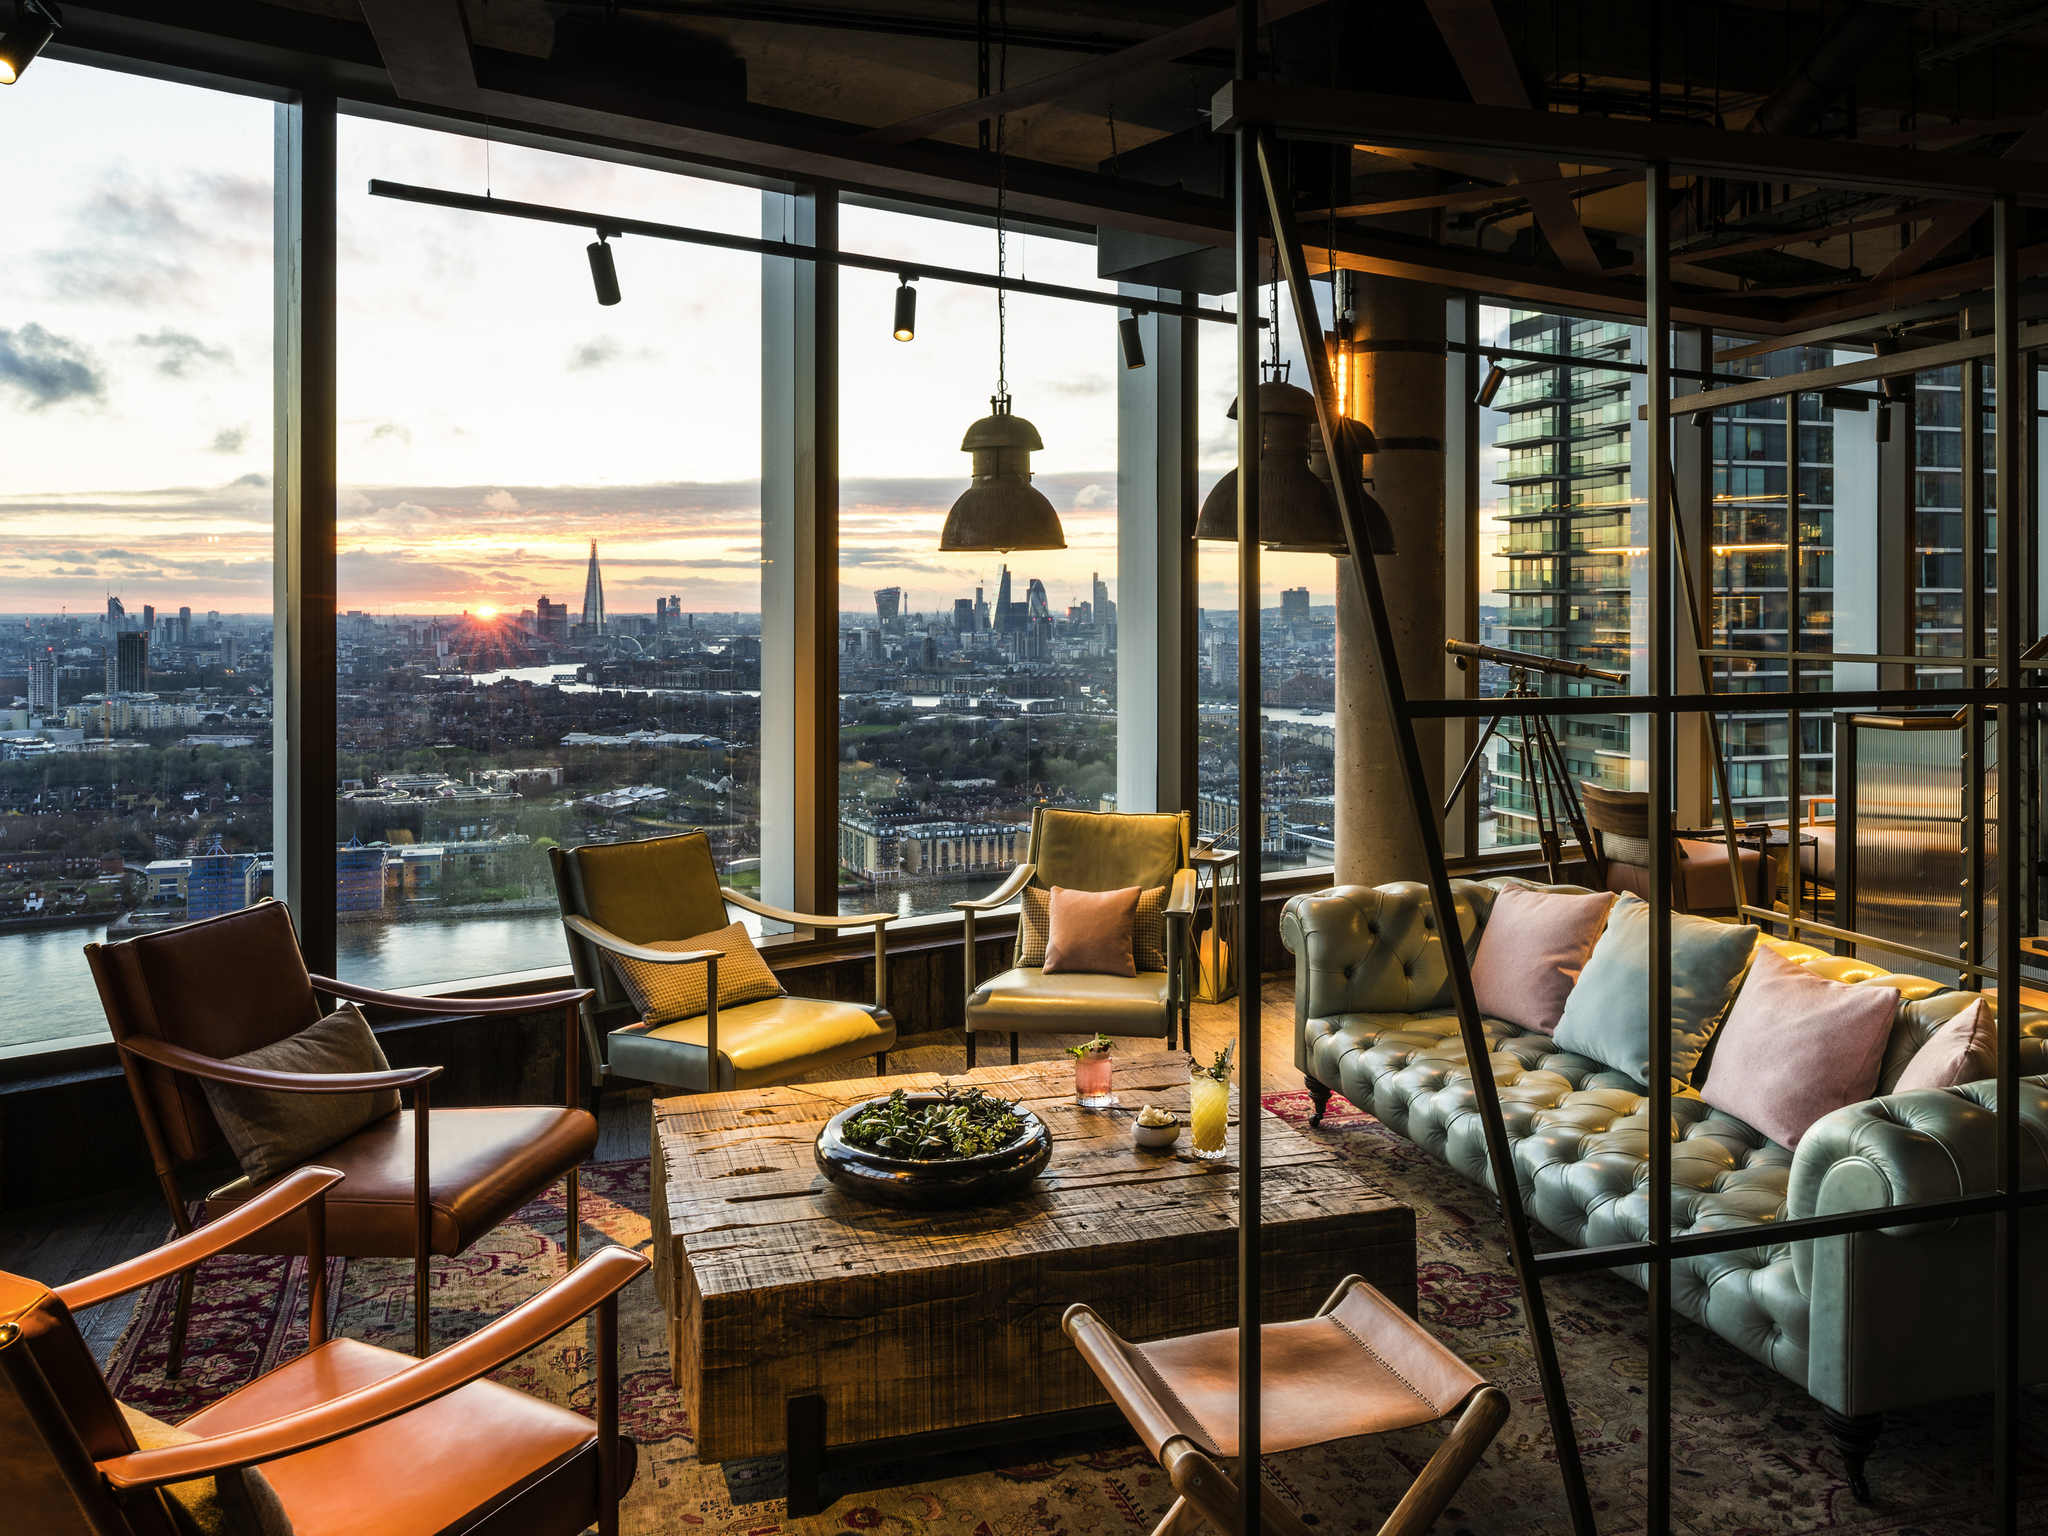 Hotel – Novotel London Canary Wharf